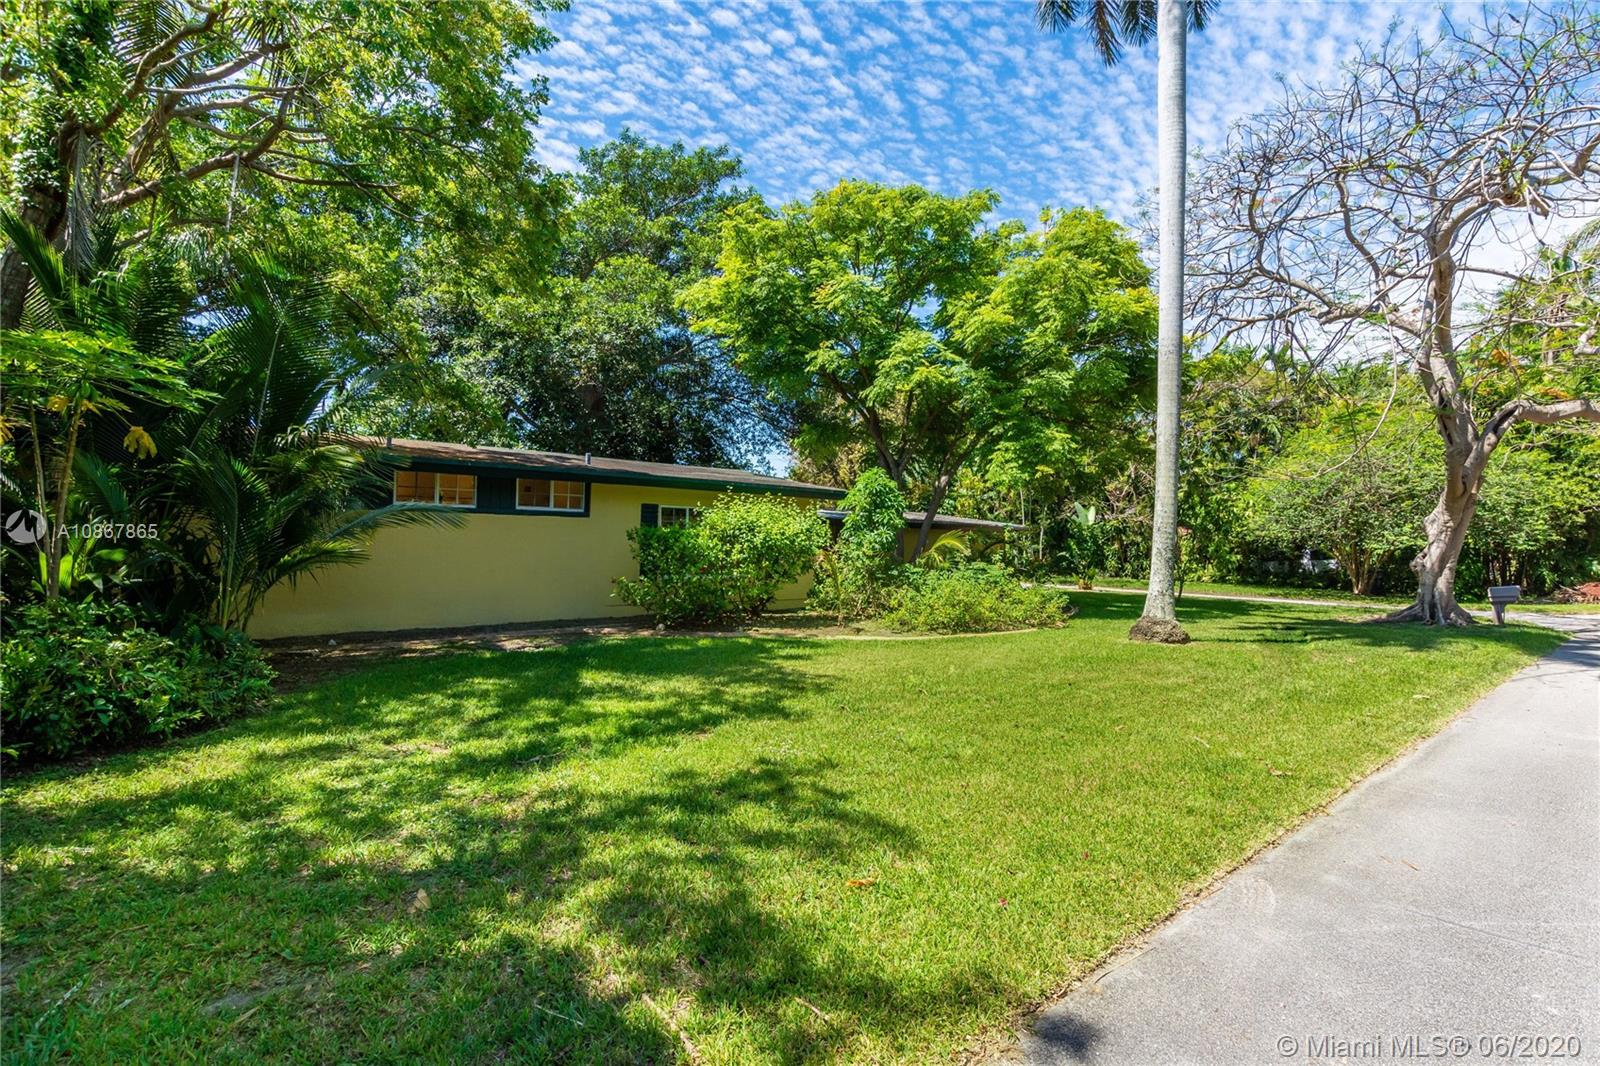 Just Reduced!! This Charming Single Family Home is located in the Heart of South Miami! This home features an Extended lot of over 20,000 Square Feet! One of the biggest lot sizes in the area! End Users: Add your touches and bring your Family to this large lot with plenty of greenery and space! This home has 3 Bedrooms and 2 full bath along with a fully covered terrace area. Investors or Developers:This is a Rare Chance for you to subdivide the land and build two investment homes in South Miami! This Opportunity will not last!!